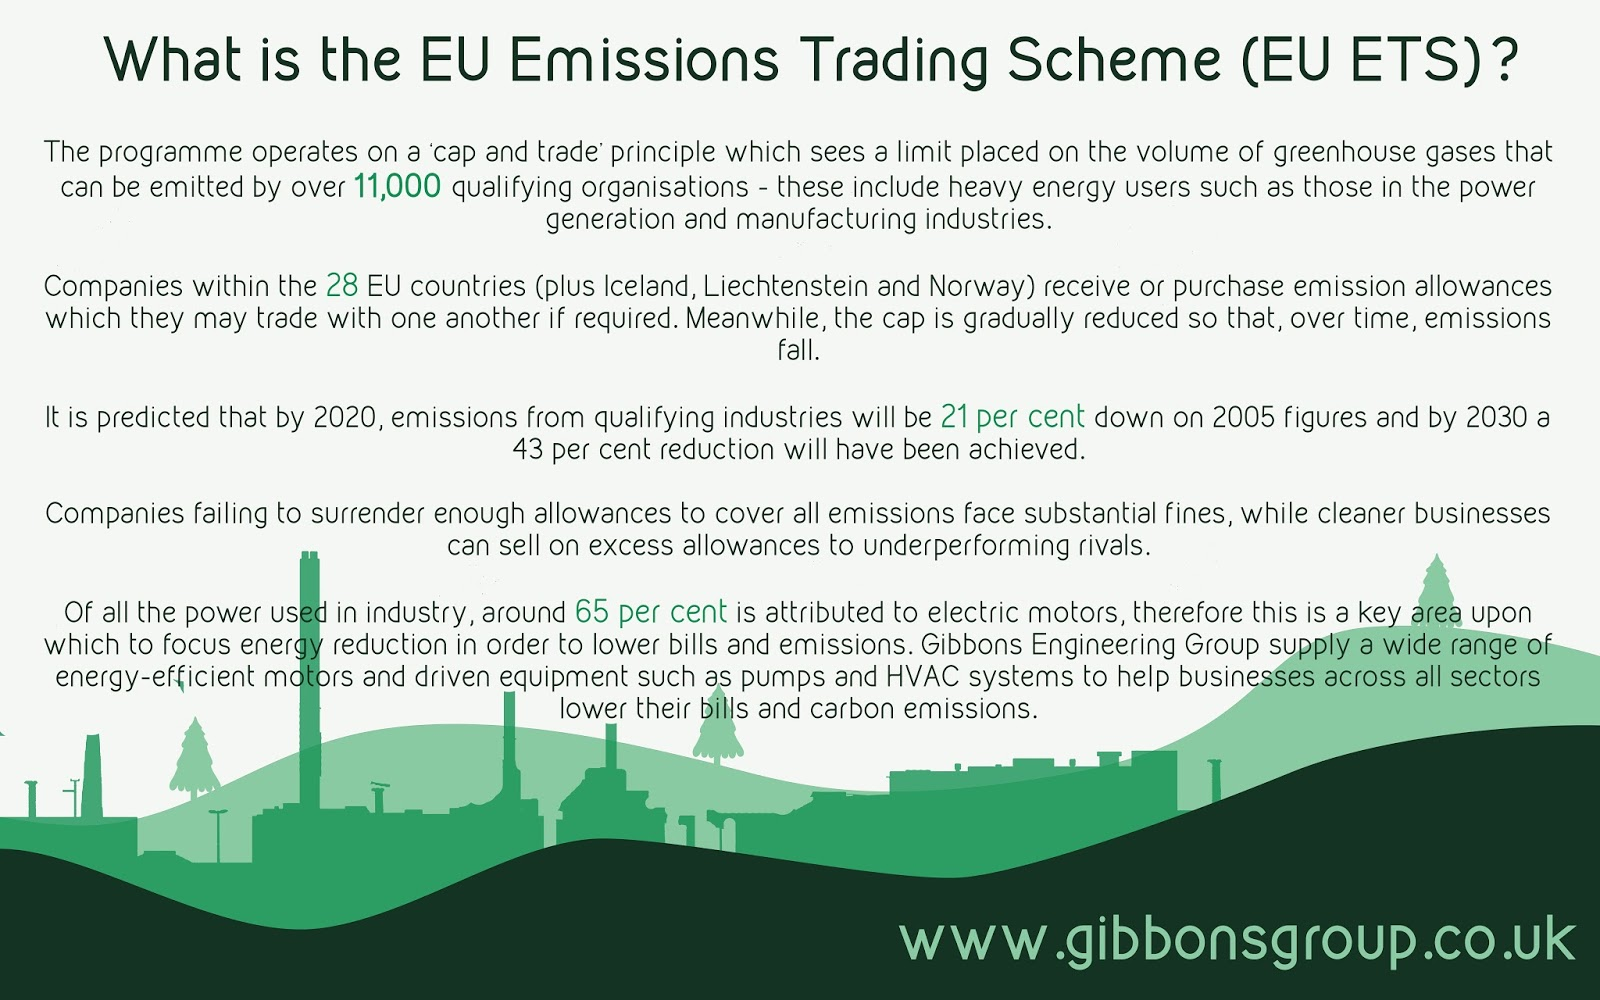 Strategic spending: how the EU Emissions Trading System can fund fair climate action | WWF